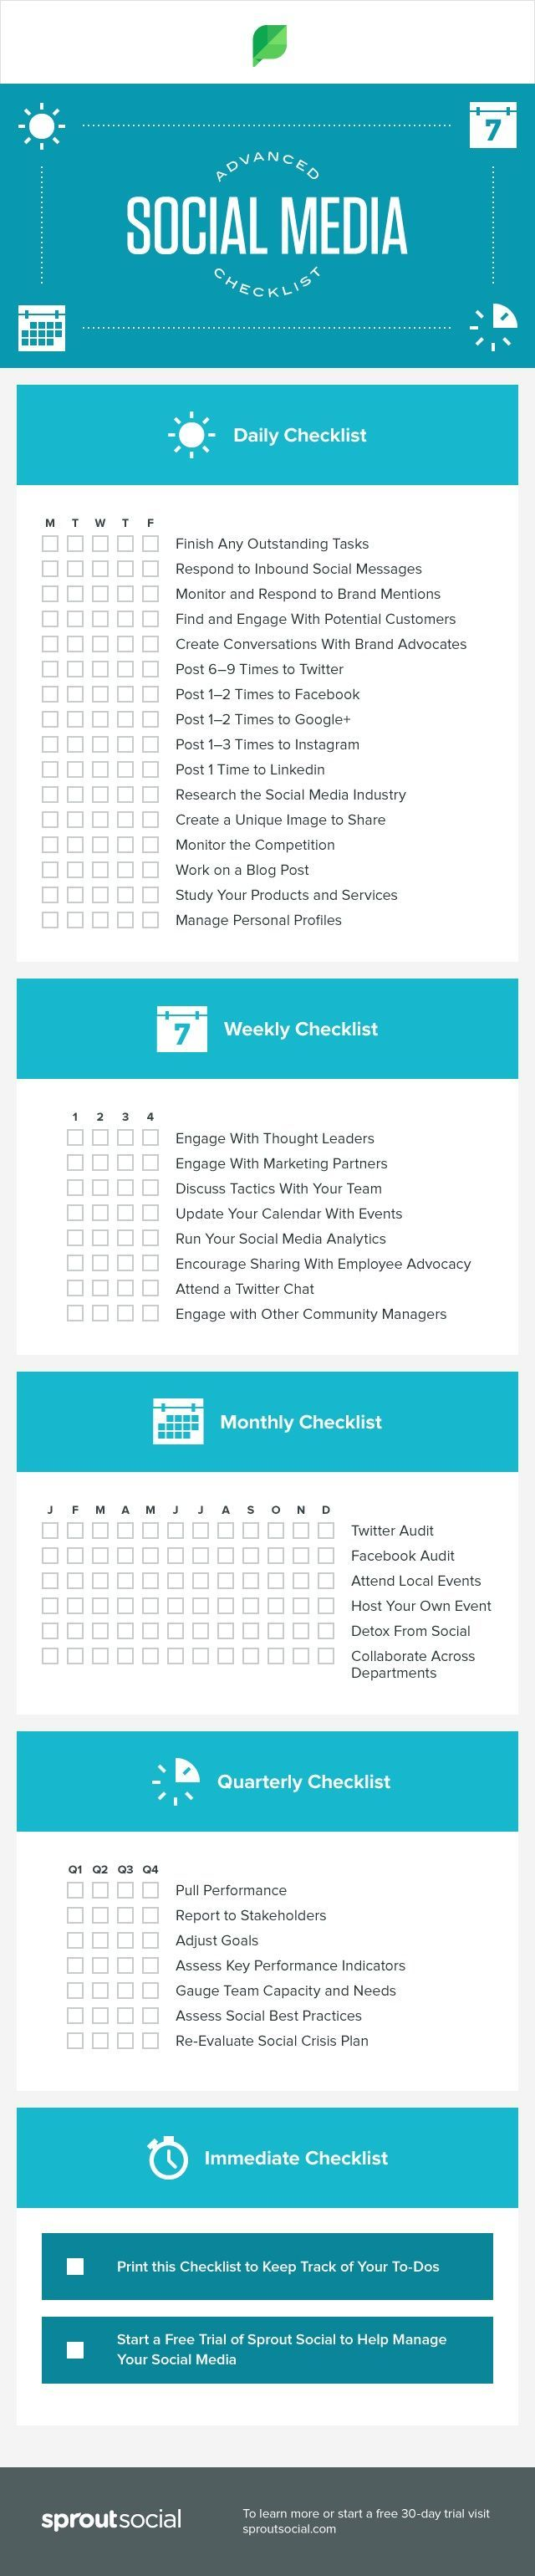 Trying to keep up with your social media marketing? Here's the guide! This is the only social media checklist you'll ever need! (Infographic)